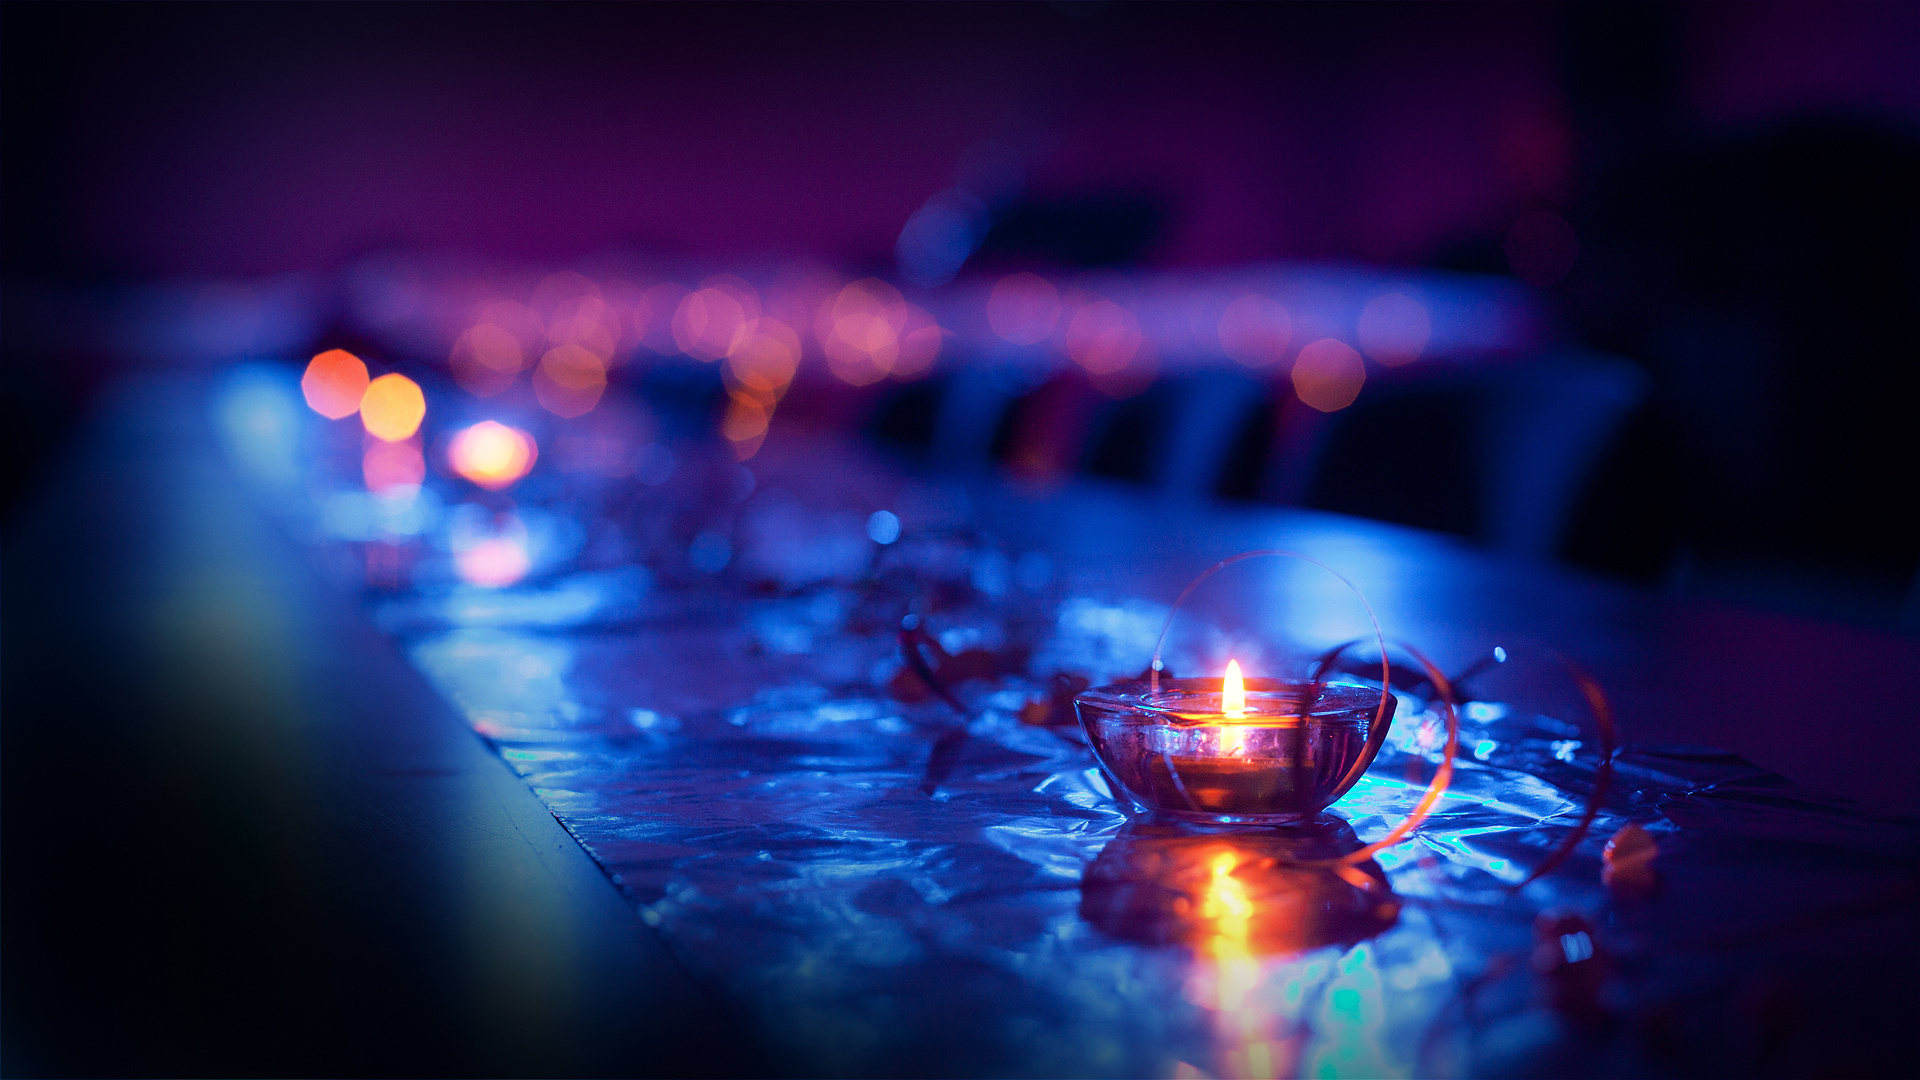 Candles Hd Wallpapers Candle Backgrounds And Images: Candle HD Wallpaper